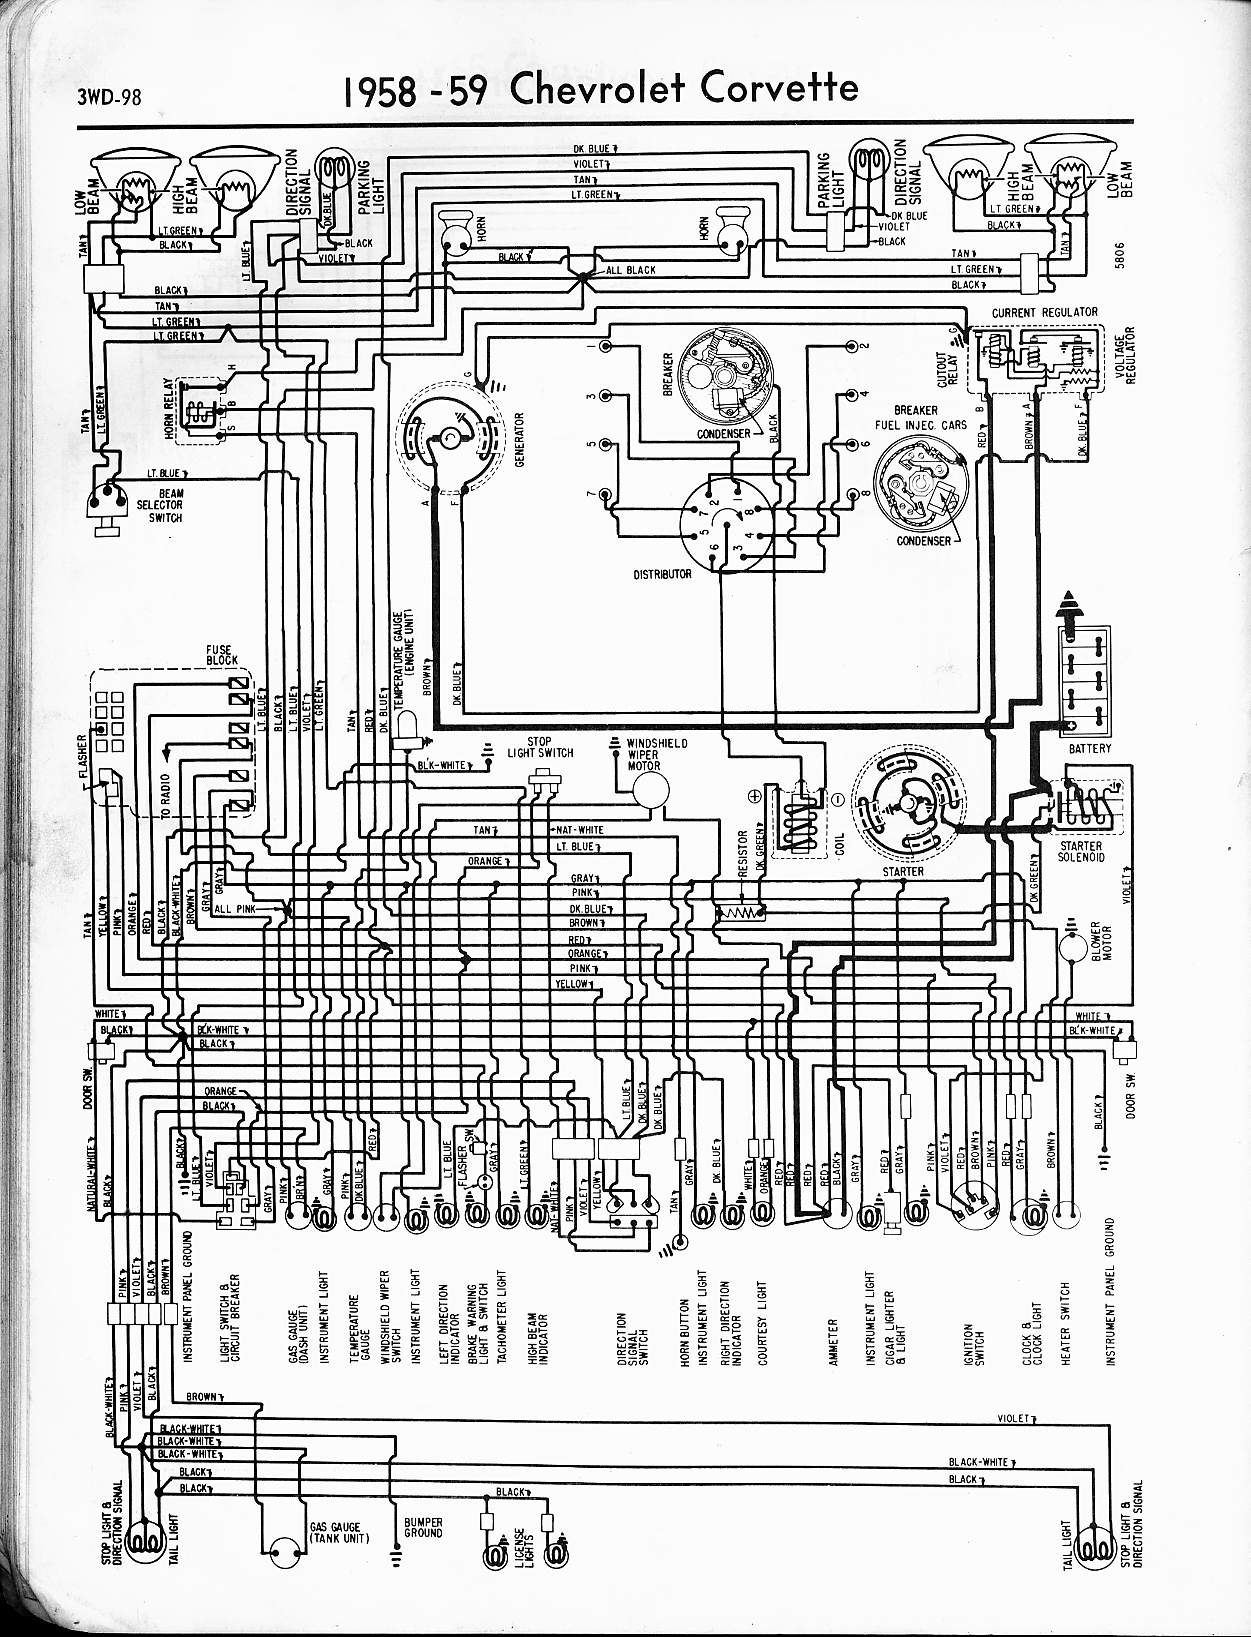 67 impala sedan wiring diagram residential electrical symbols u2022 rh bookmyad co 1986 Chevy Truck Wiring Diagram Ford Electrical Wiring Diagrams